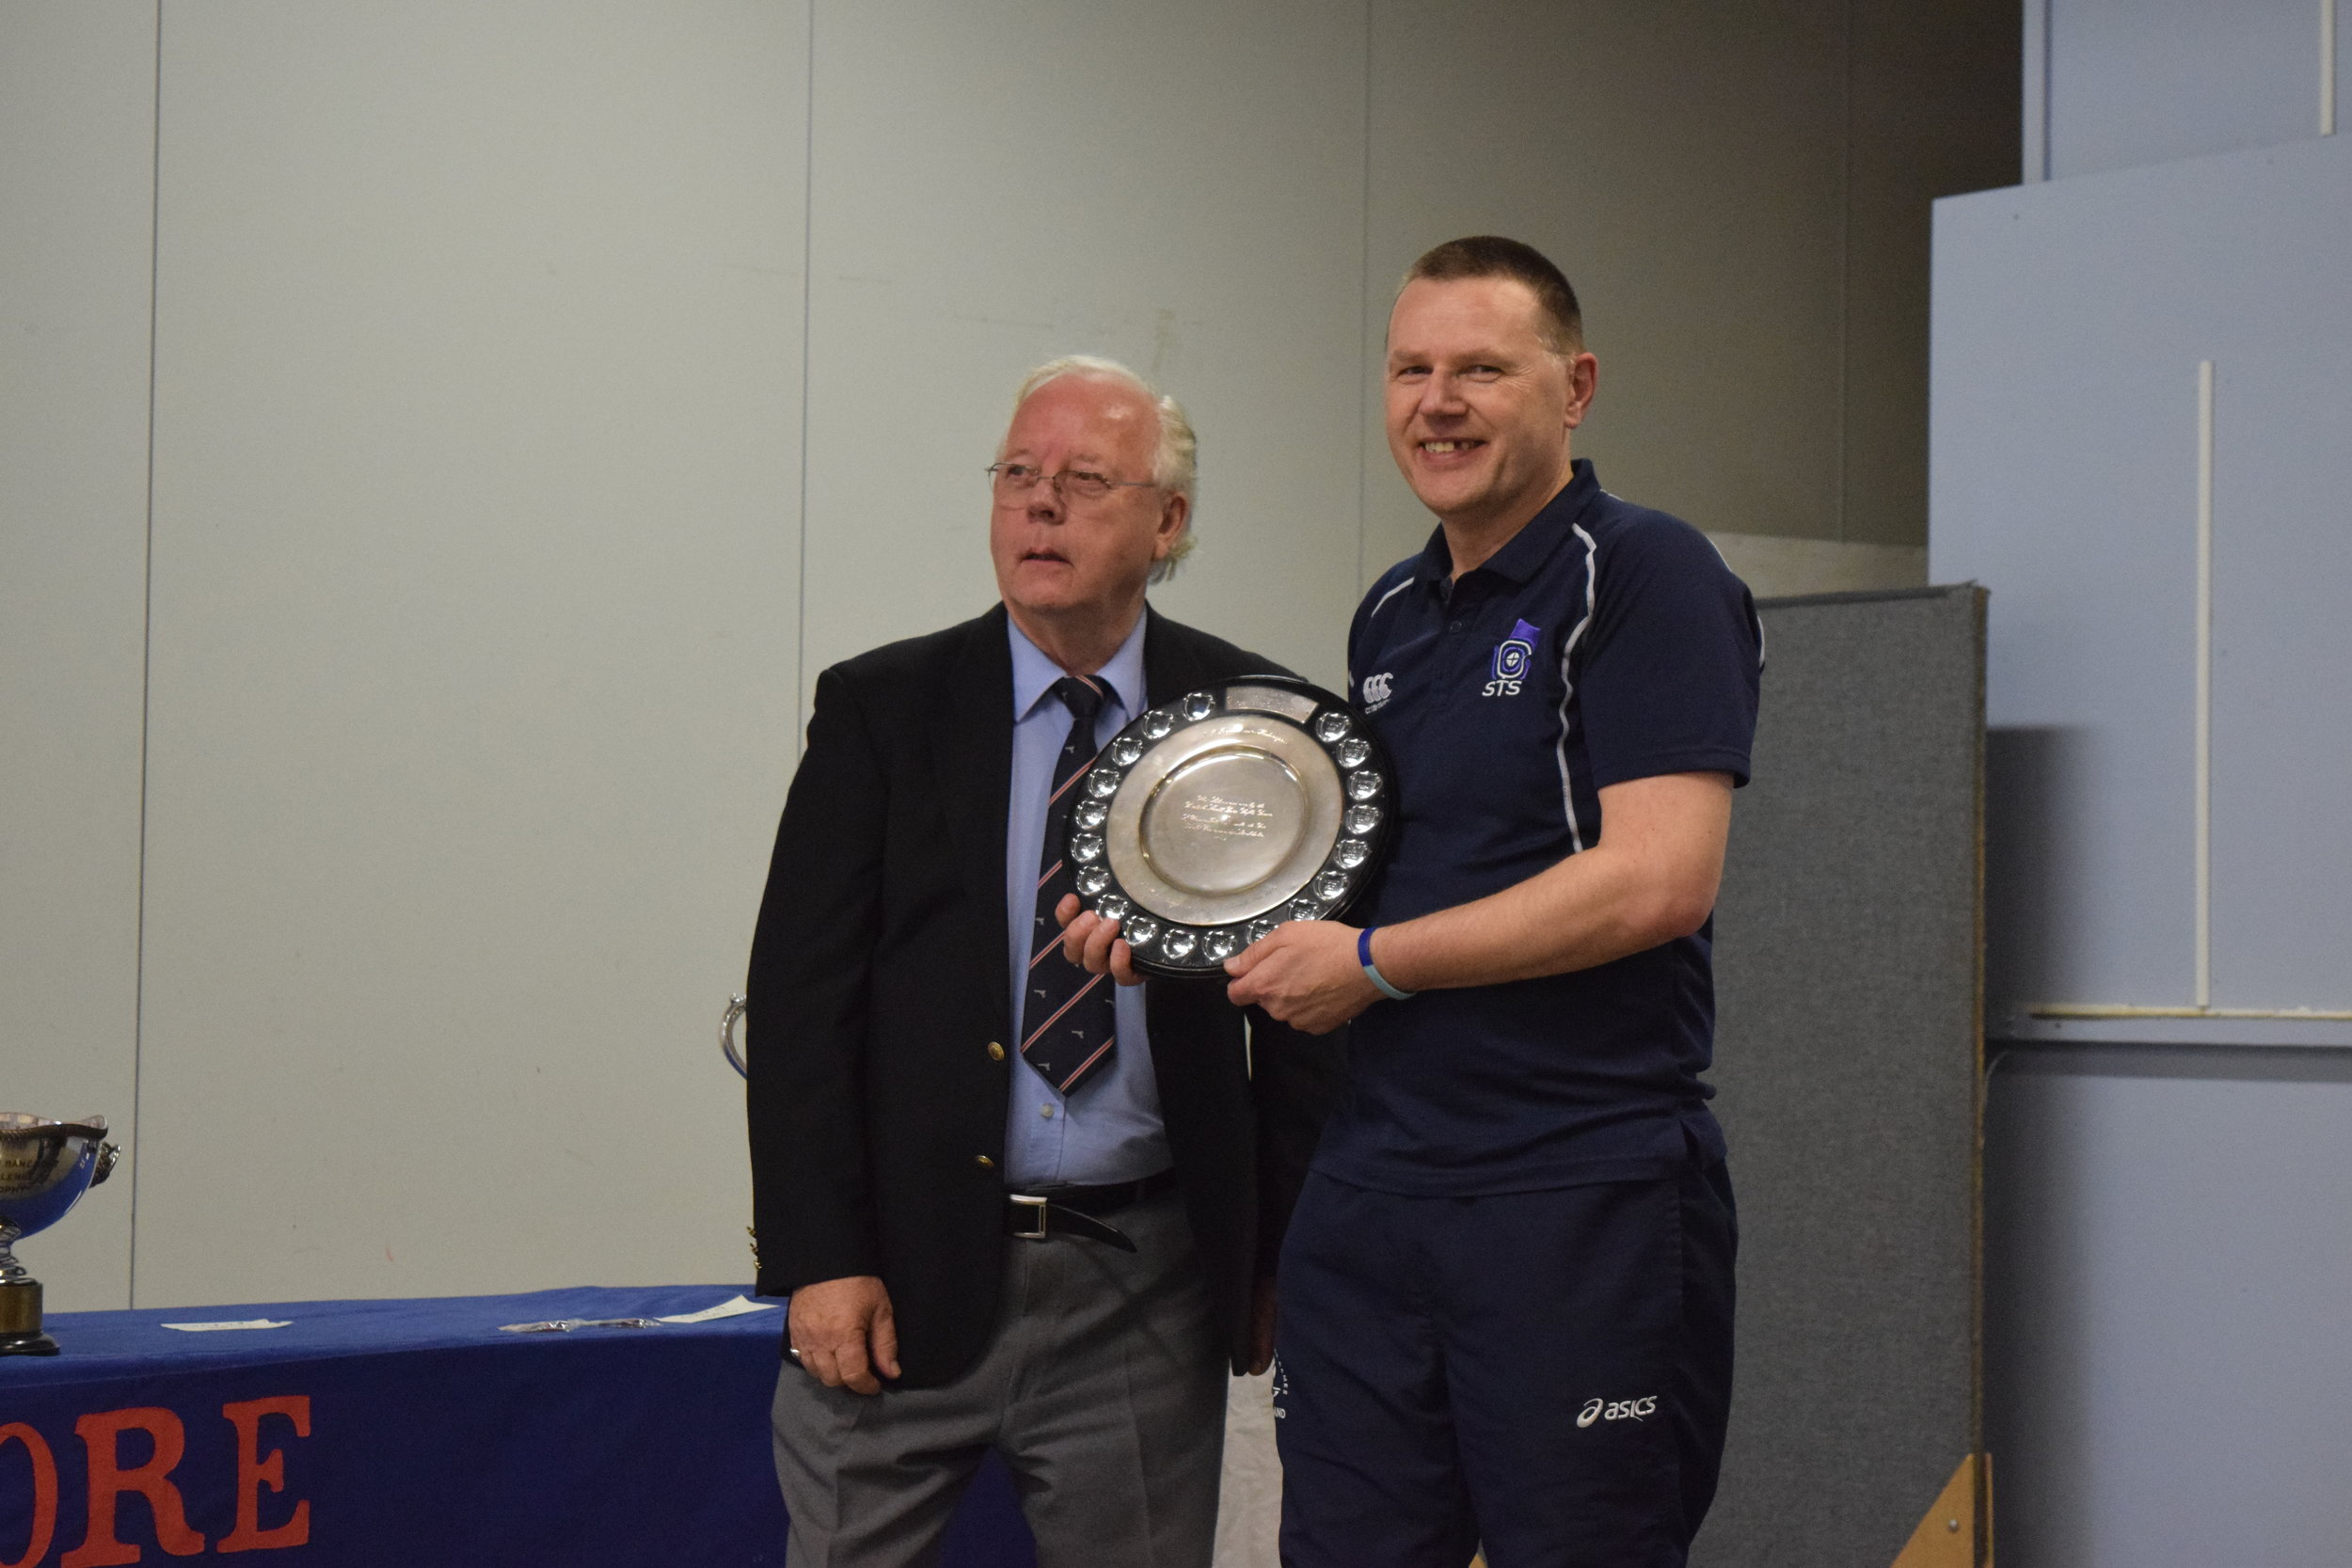 David Owen being presented with the 50M Free Pistol Shield